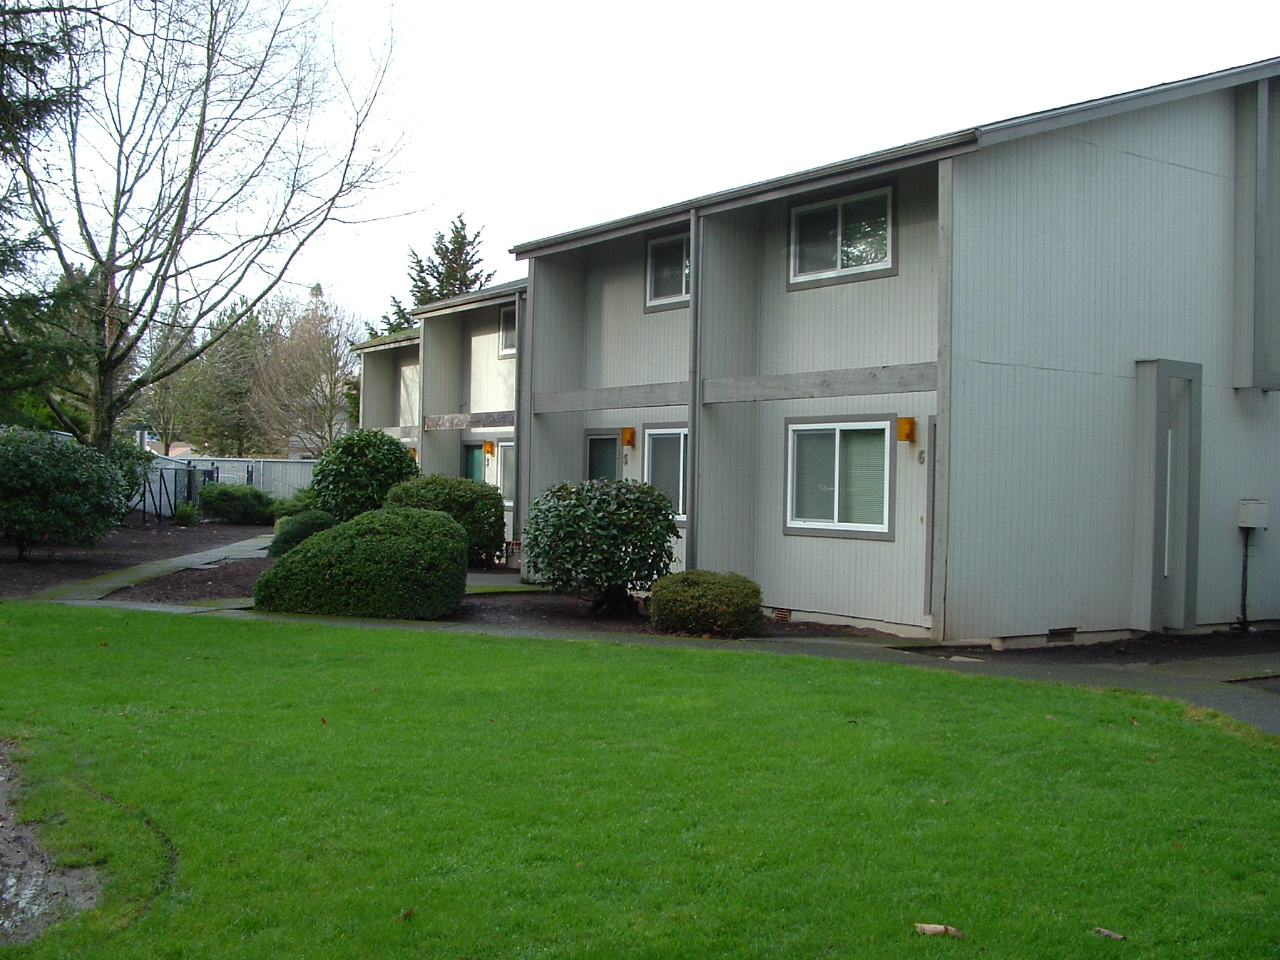 We Are A Community Of 46 Town Homes Located In A Beautiful, Secluded Area  Of Keizer, OR.